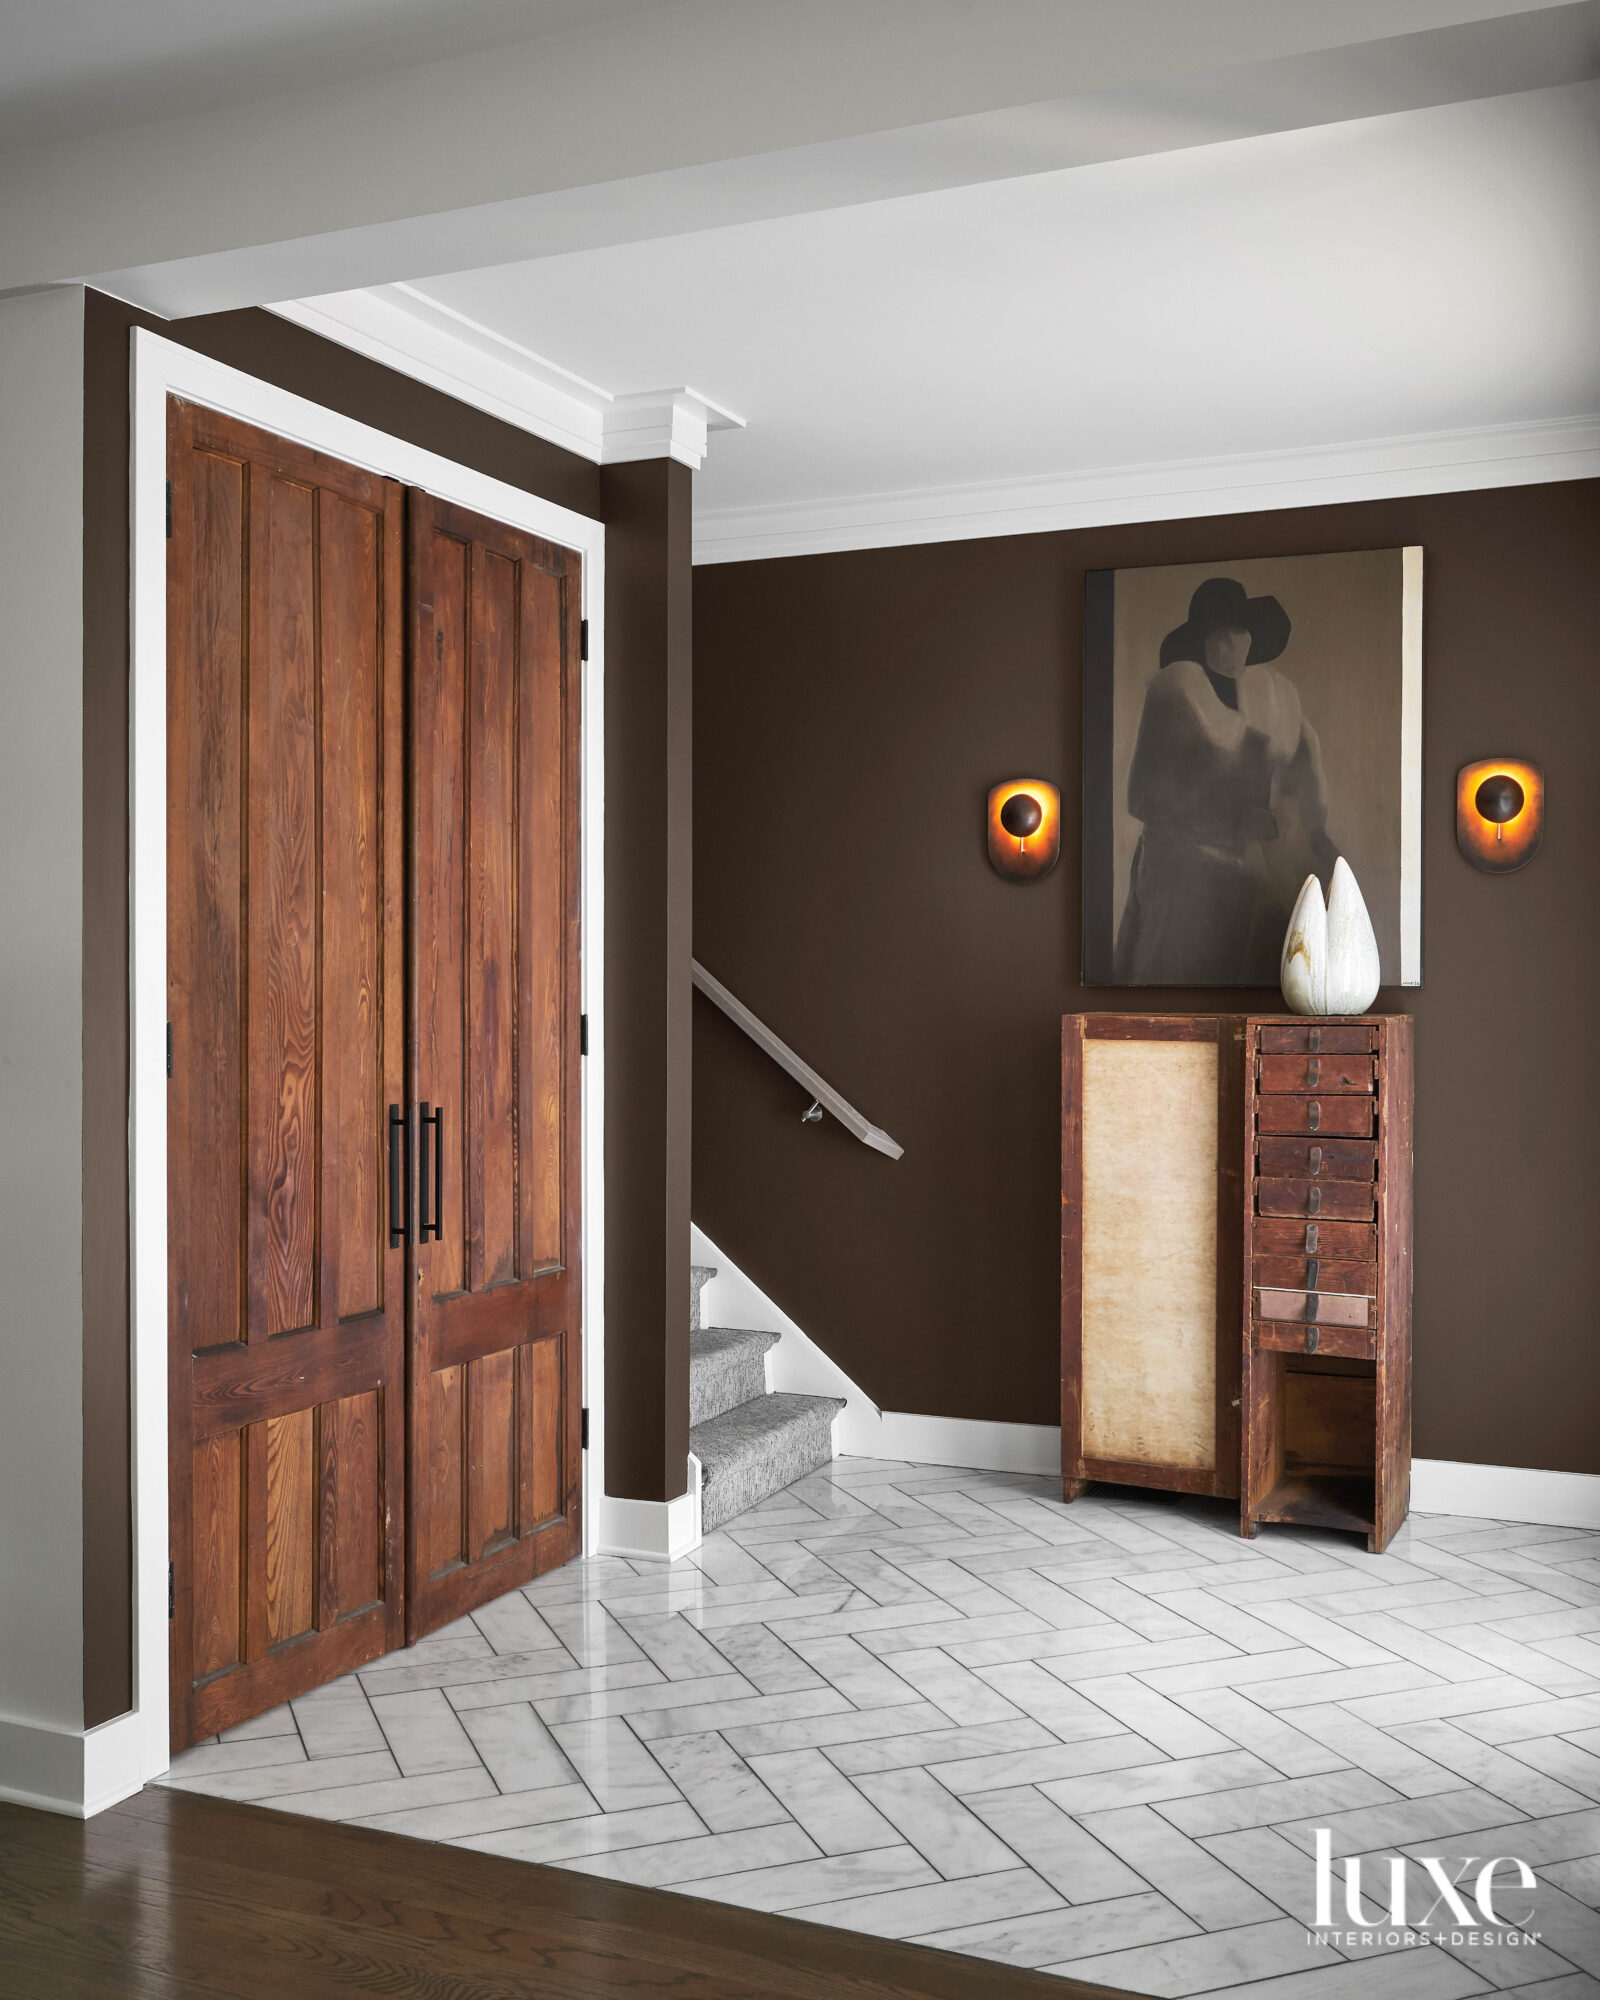 The entry has marble floors and chocolate brown walls.